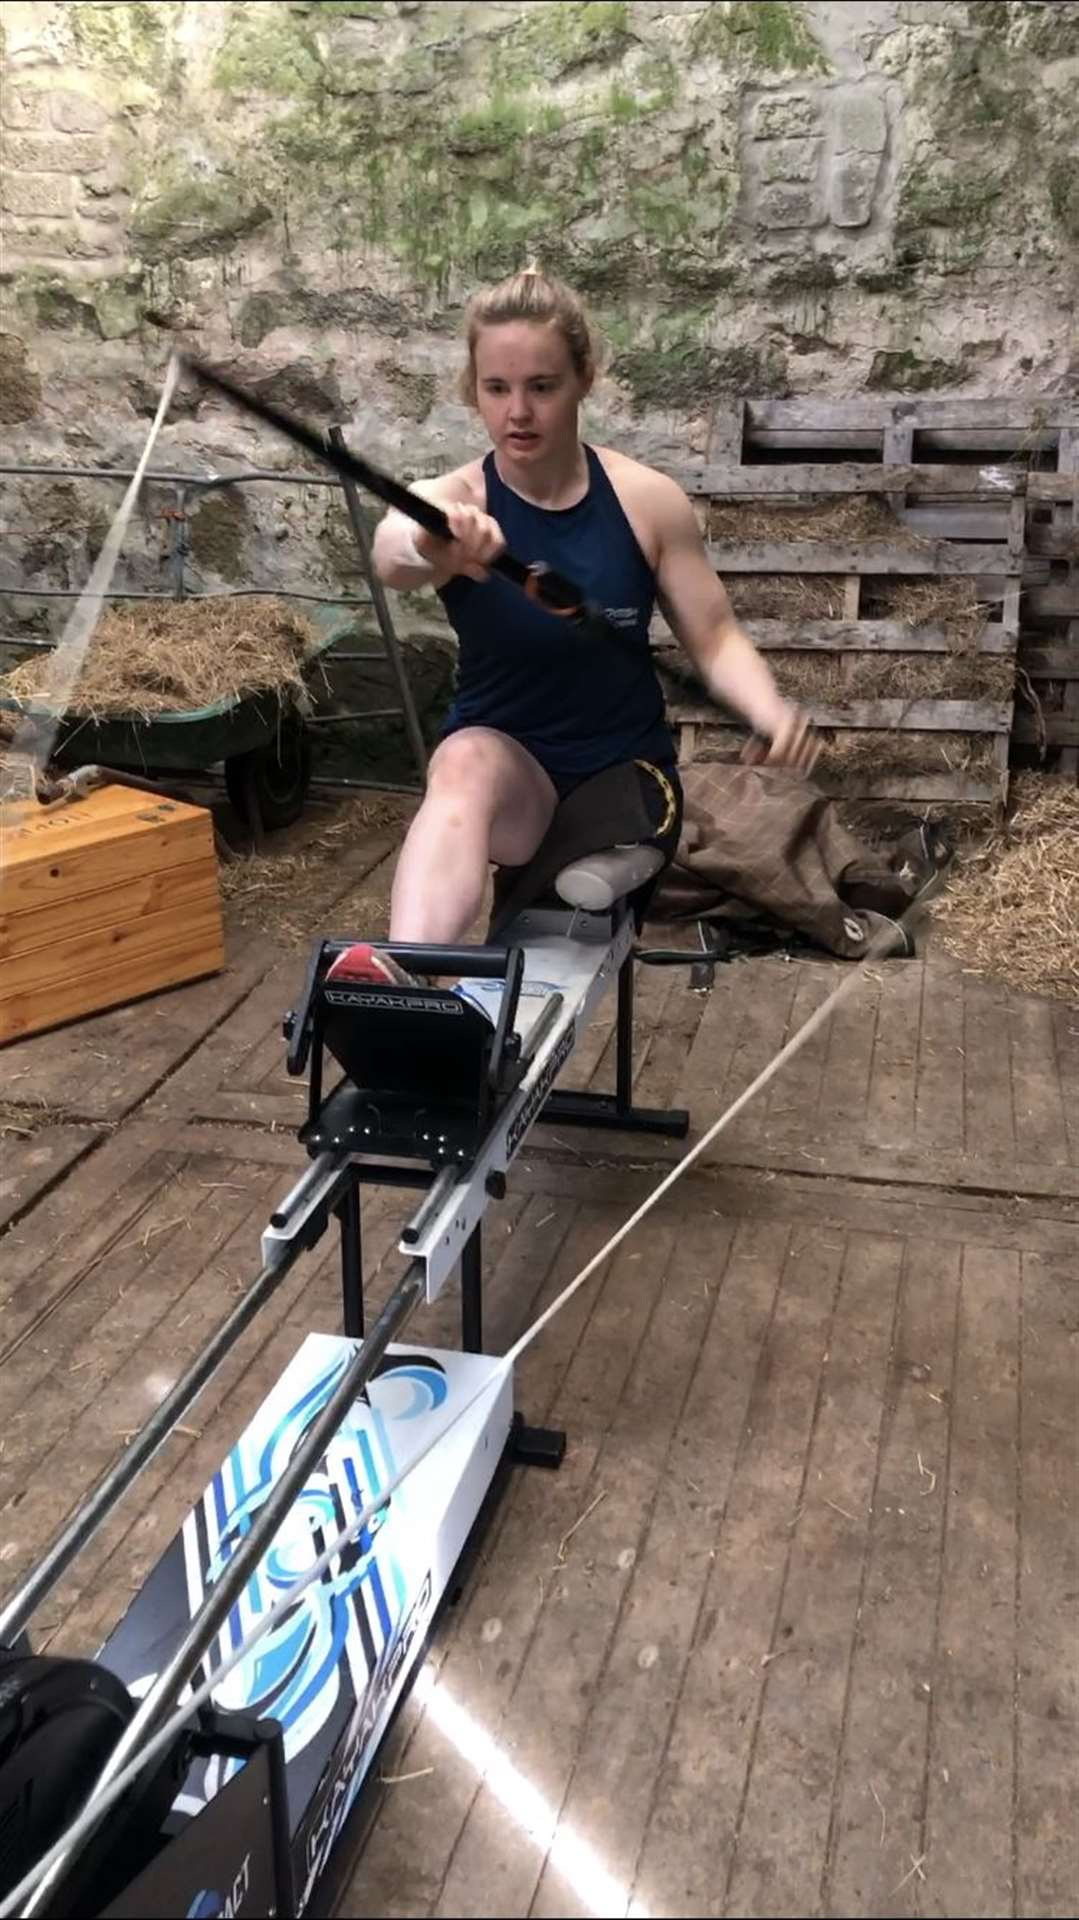 Hope Gordon training on her kayaking machine in the barn which has been converted into a gym.